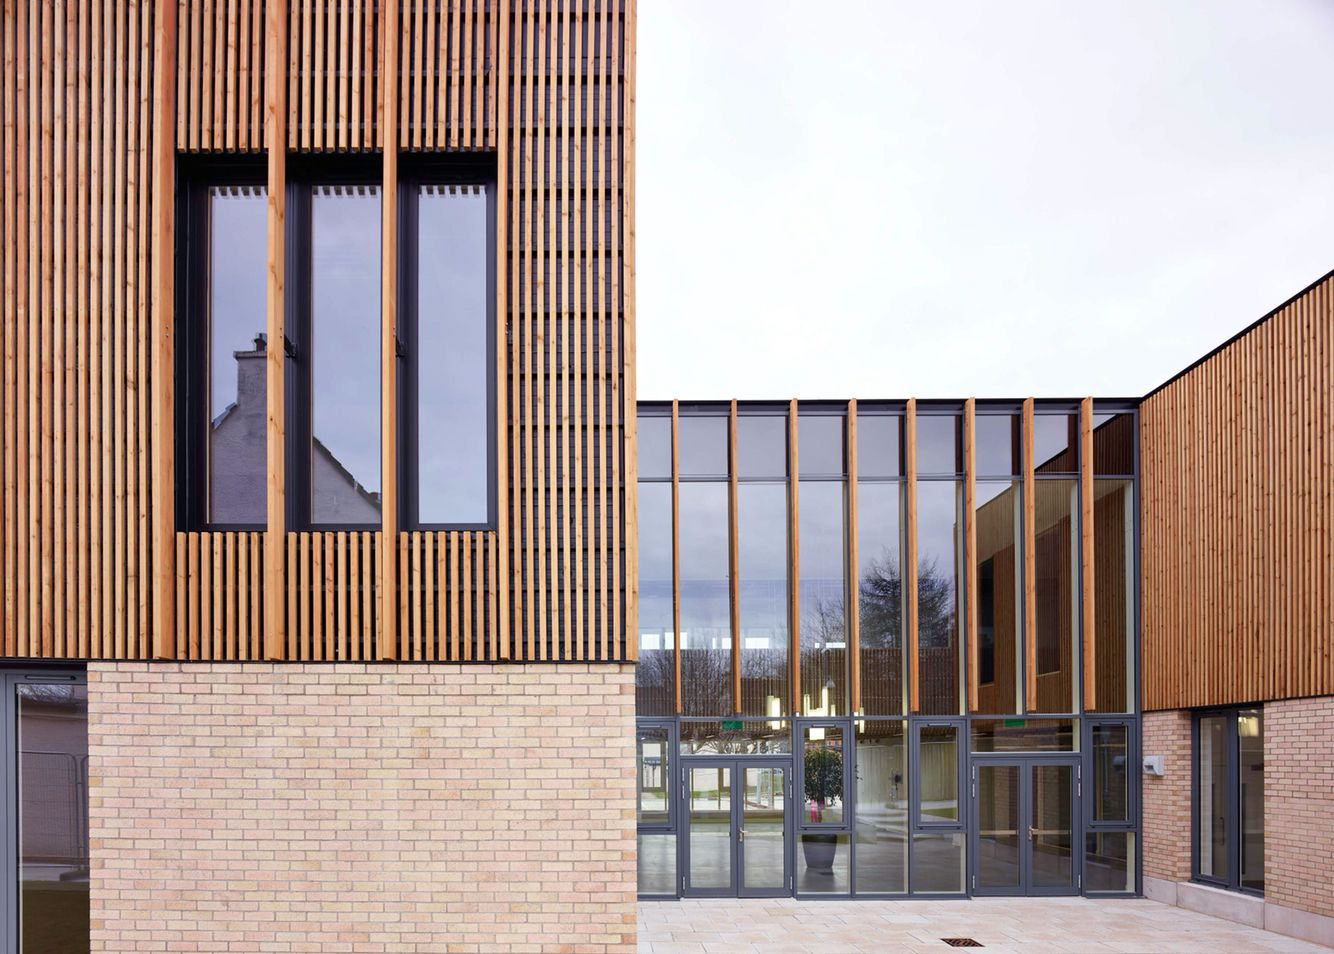 Wood Cladding On Brick Wall : Thistle foundation centre of health wellbeing